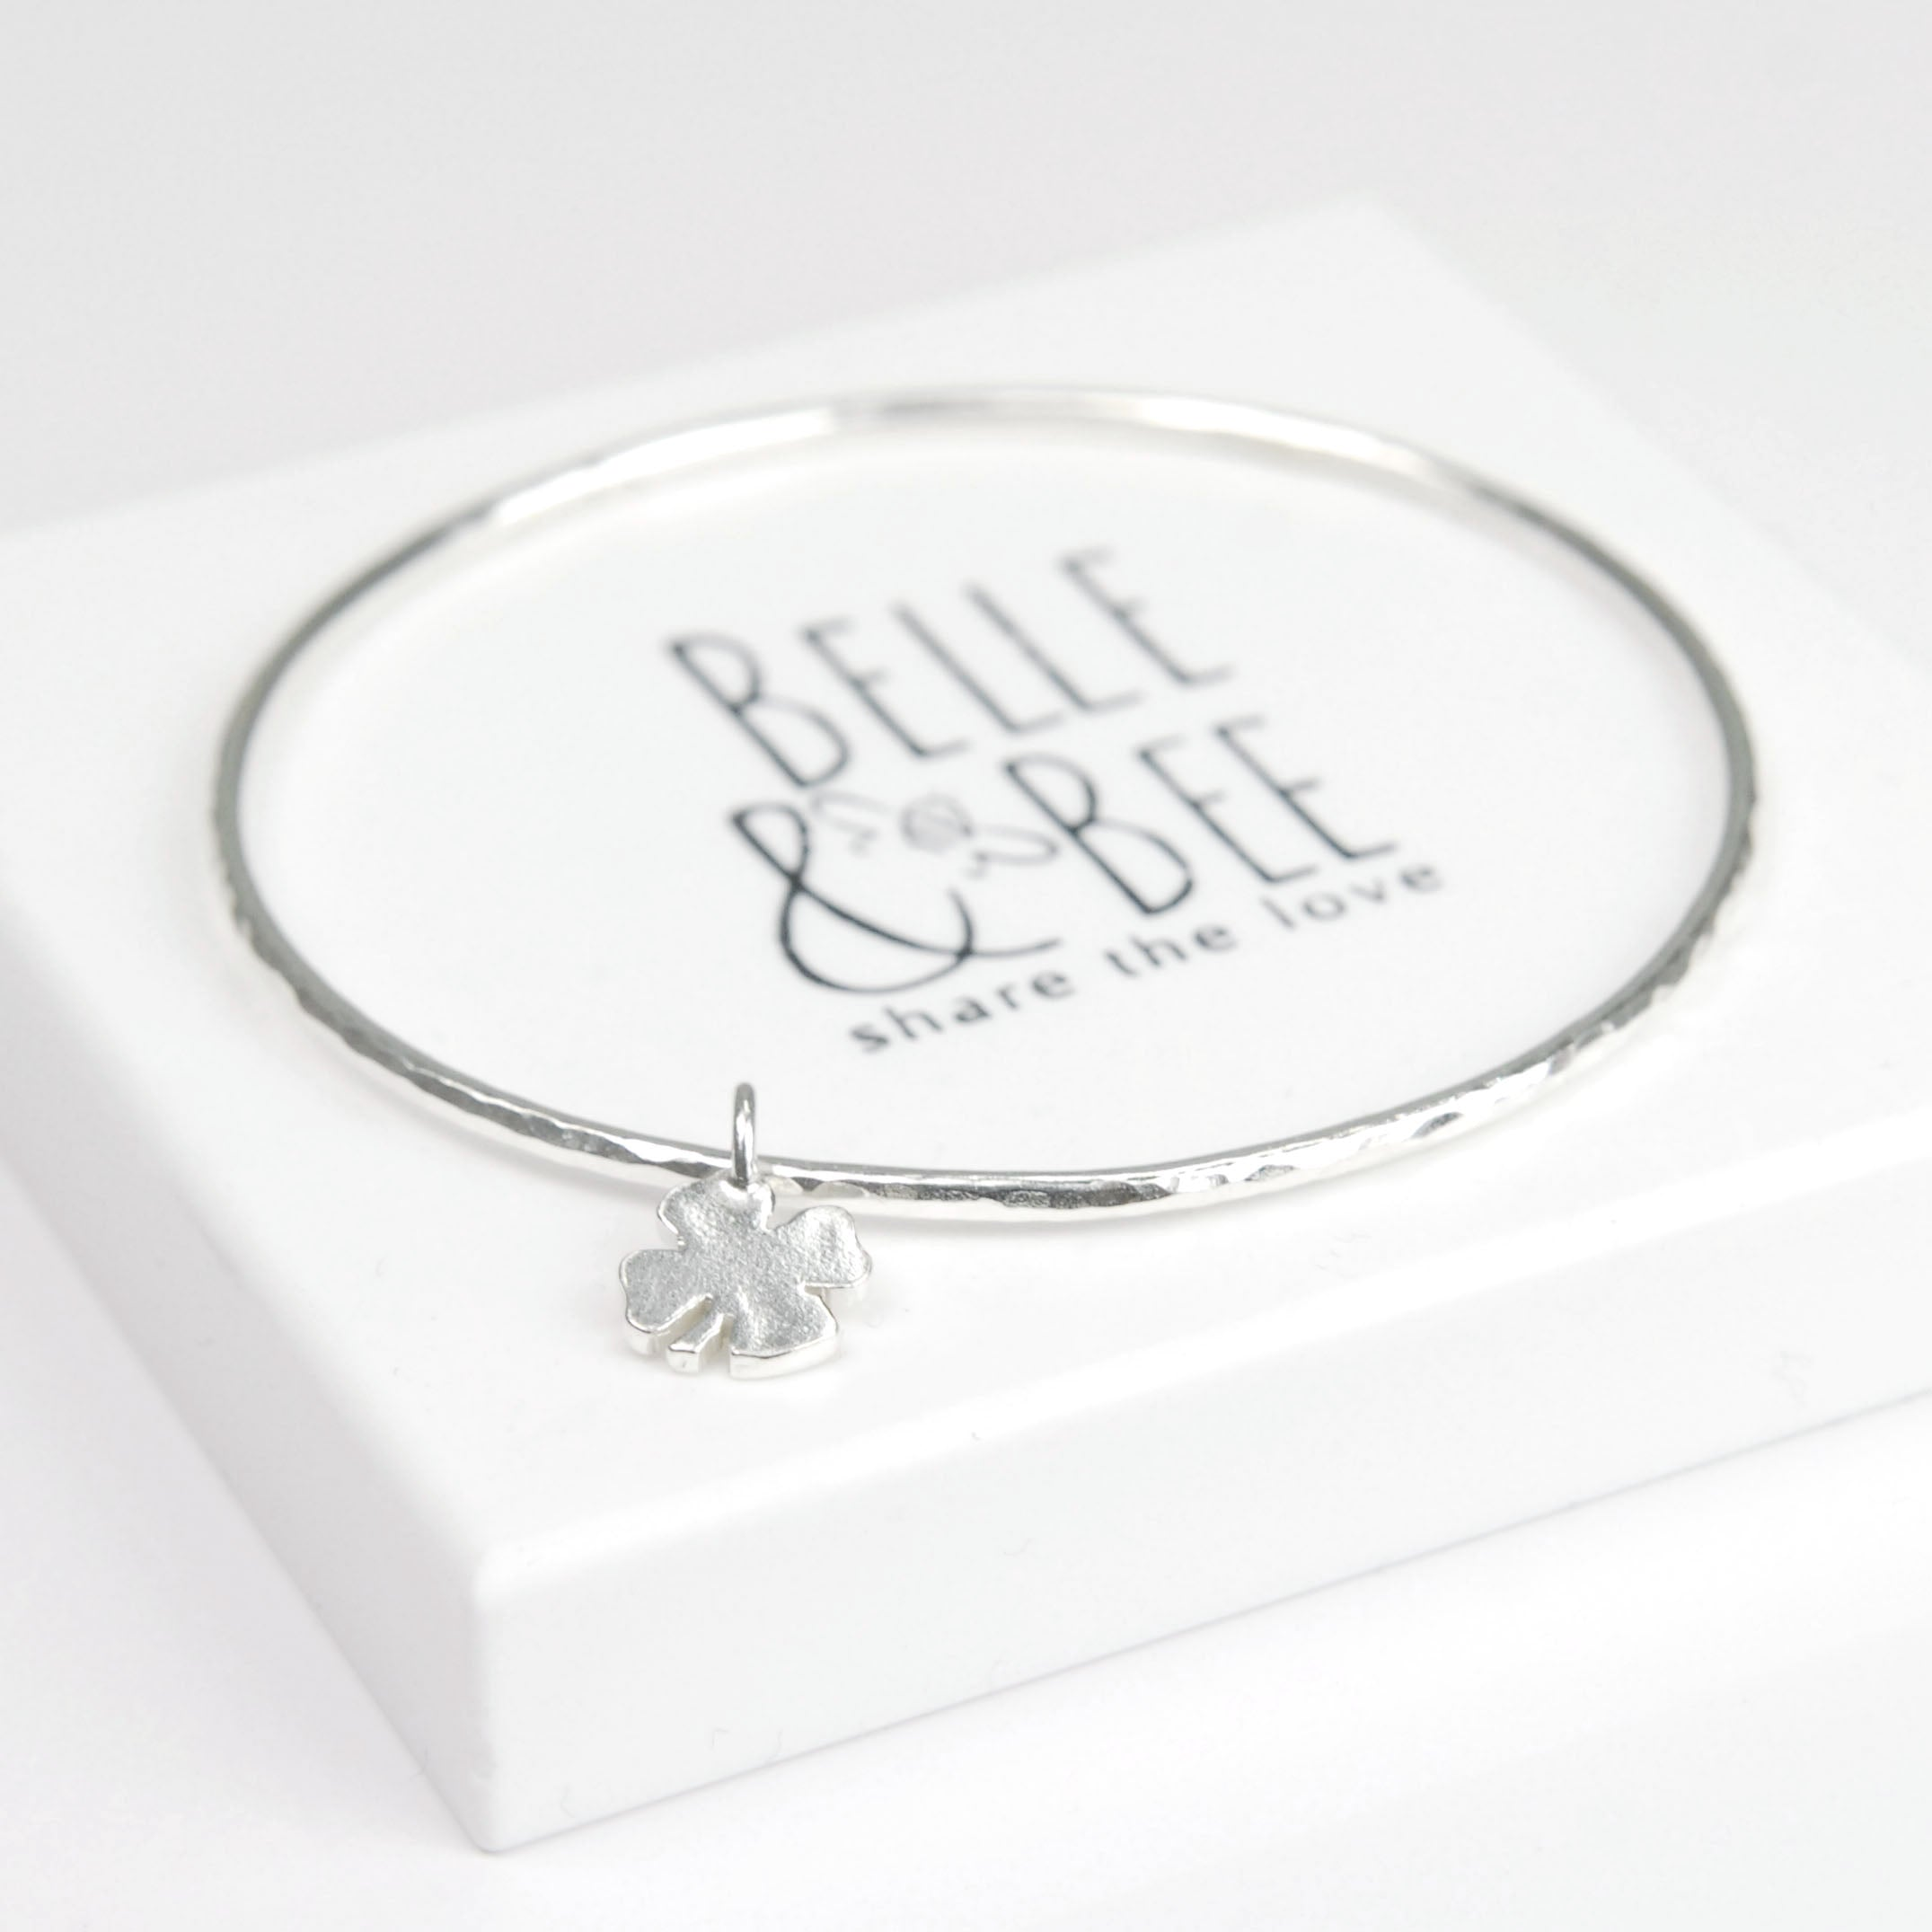 Belle & Bee 2mm Sterling Silver Hammered Bangle with Mini Chunky Clover Charm